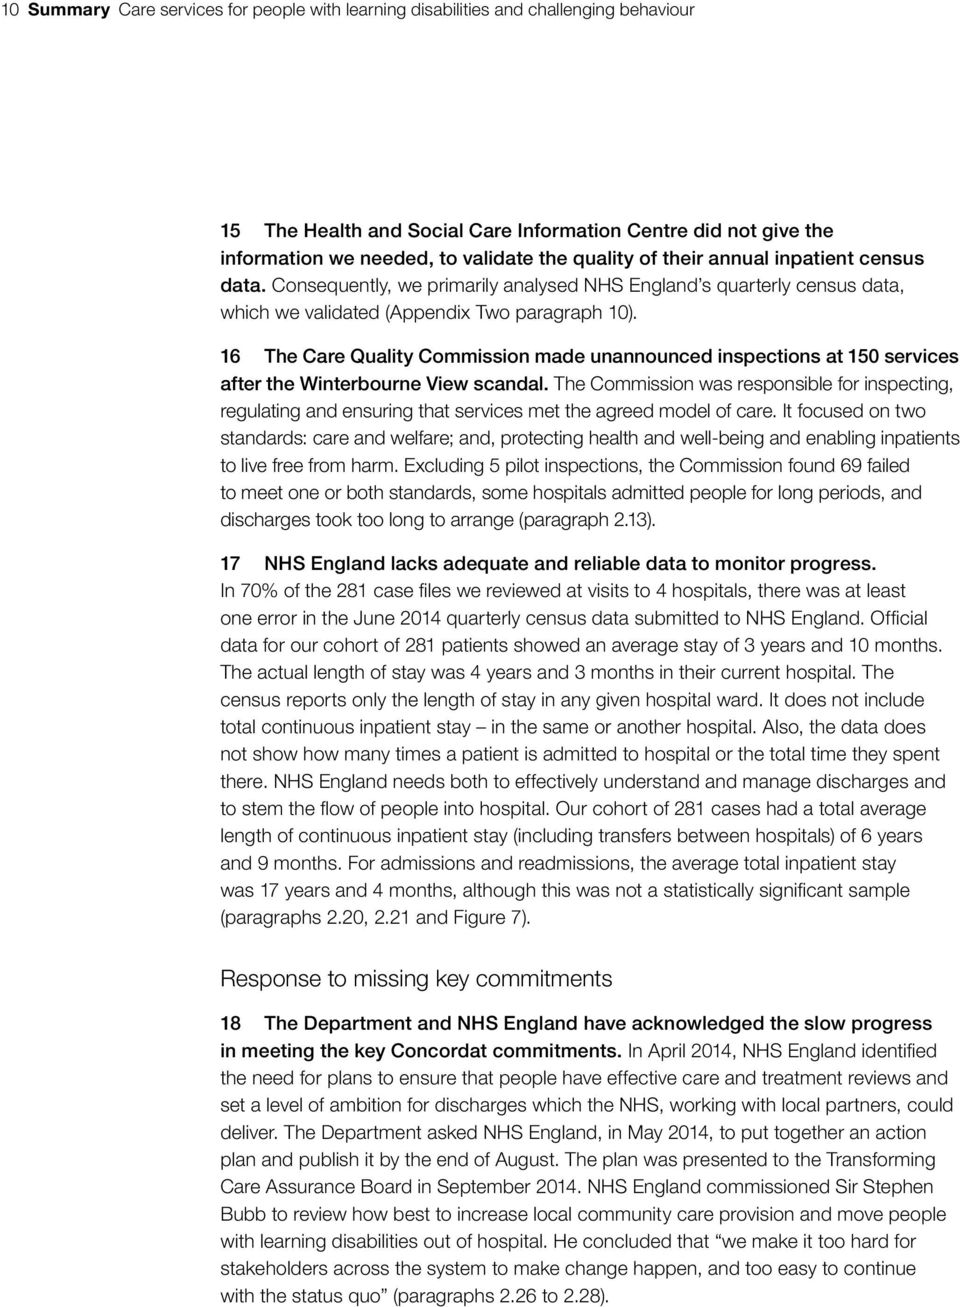 16 The Care Quality Commission made unannounced inspections at 150 services after the Winterbourne View scandal.